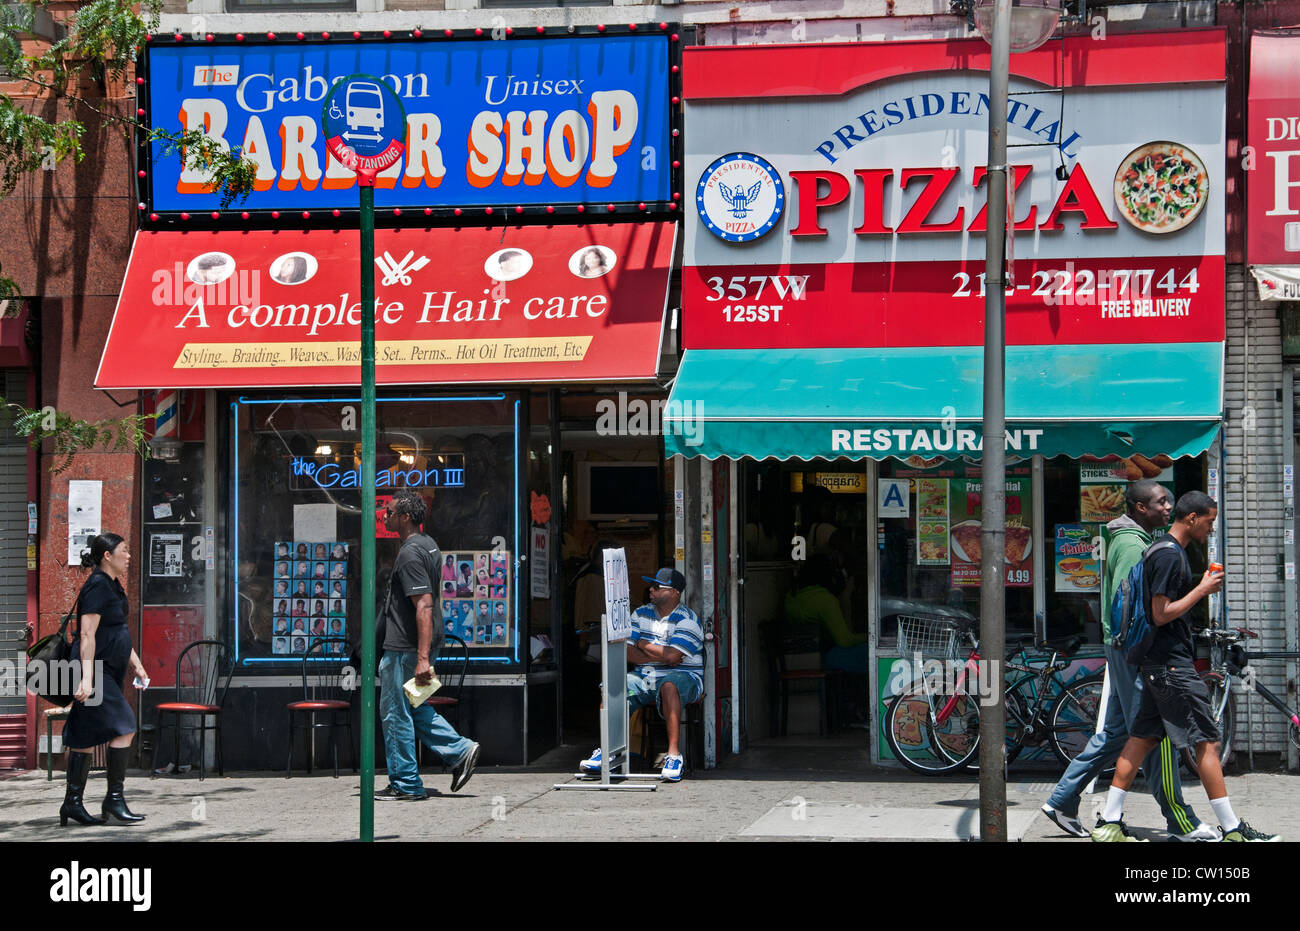 Barber shop Pizza Dr Martin Luther King JR Boulevard Harlem New York  Manhattan United States Stock Photo